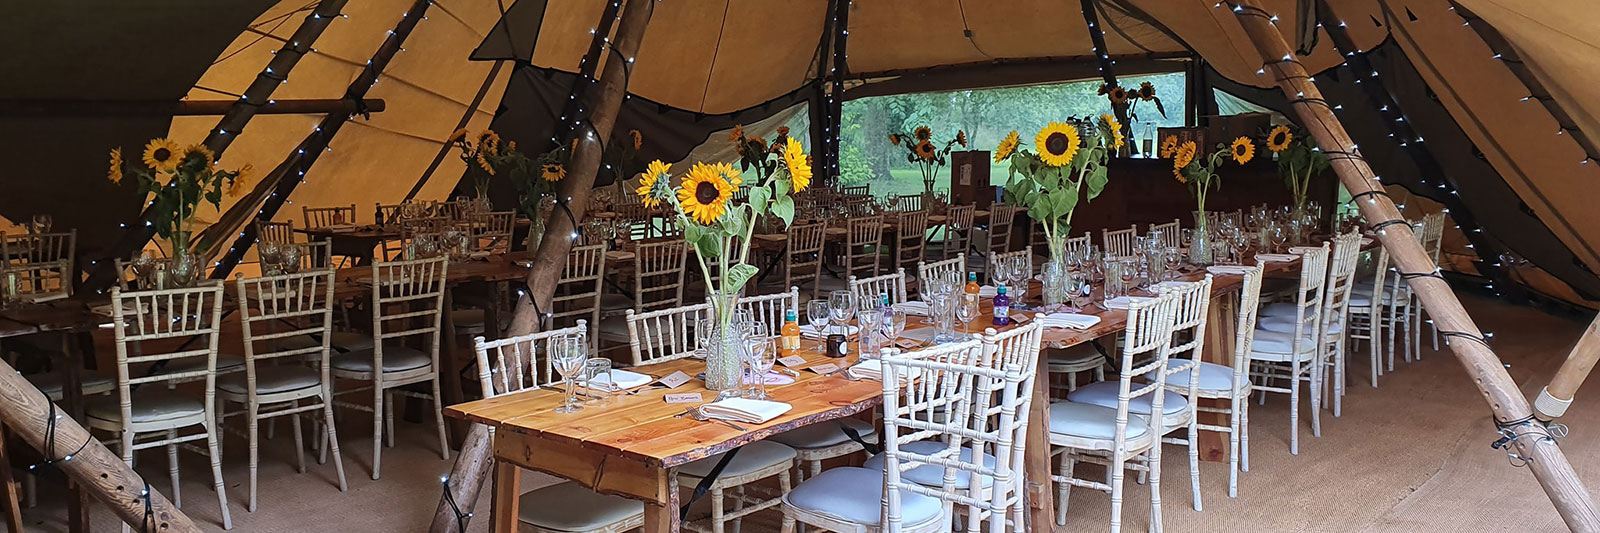 Tables dressed for a function with sunflowers in vases